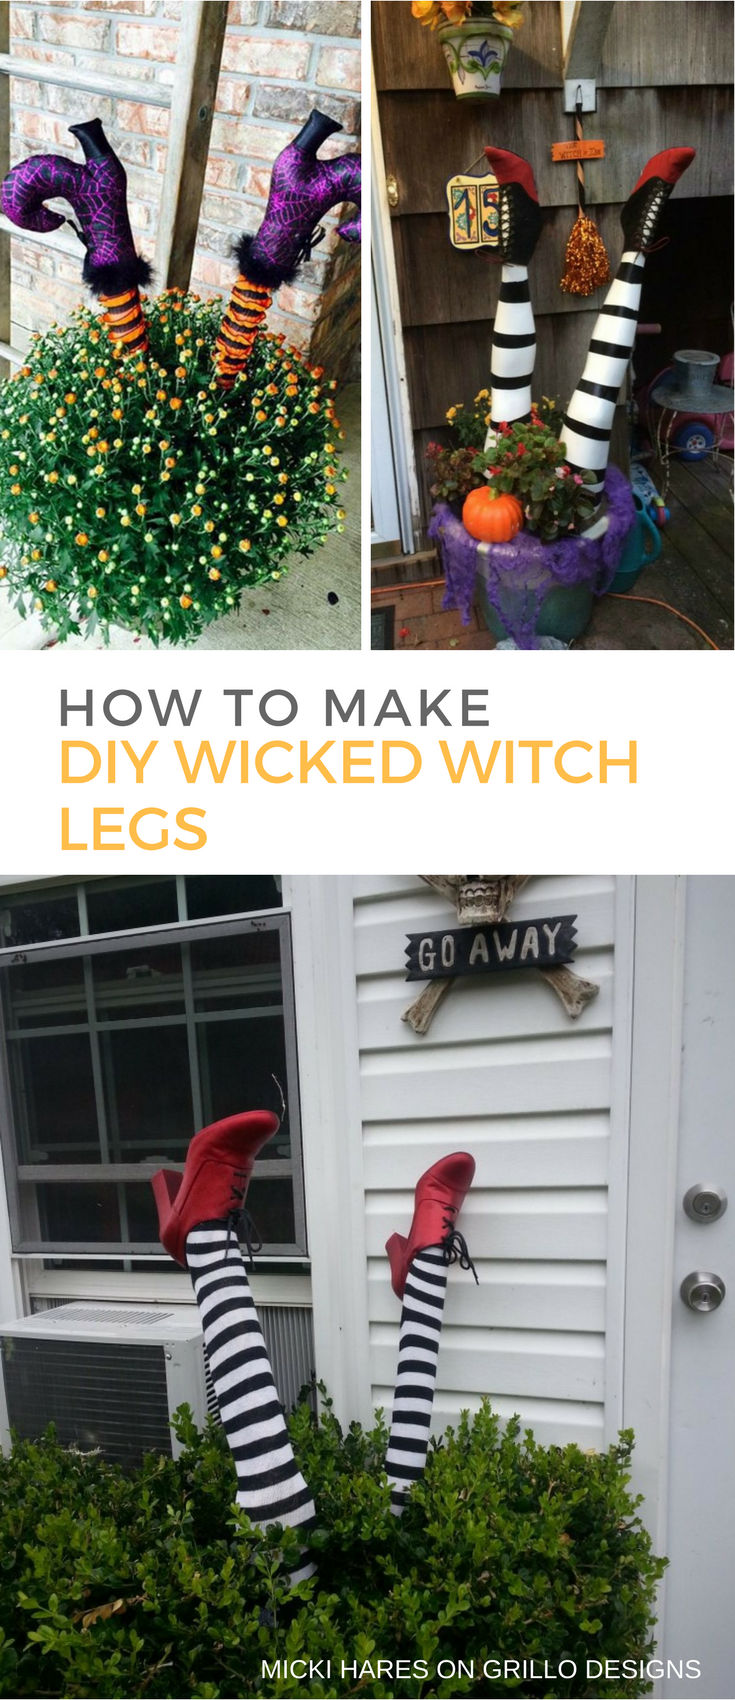 Window decor for halloween  how to make wicked witch legs  witch legs wicked and witches